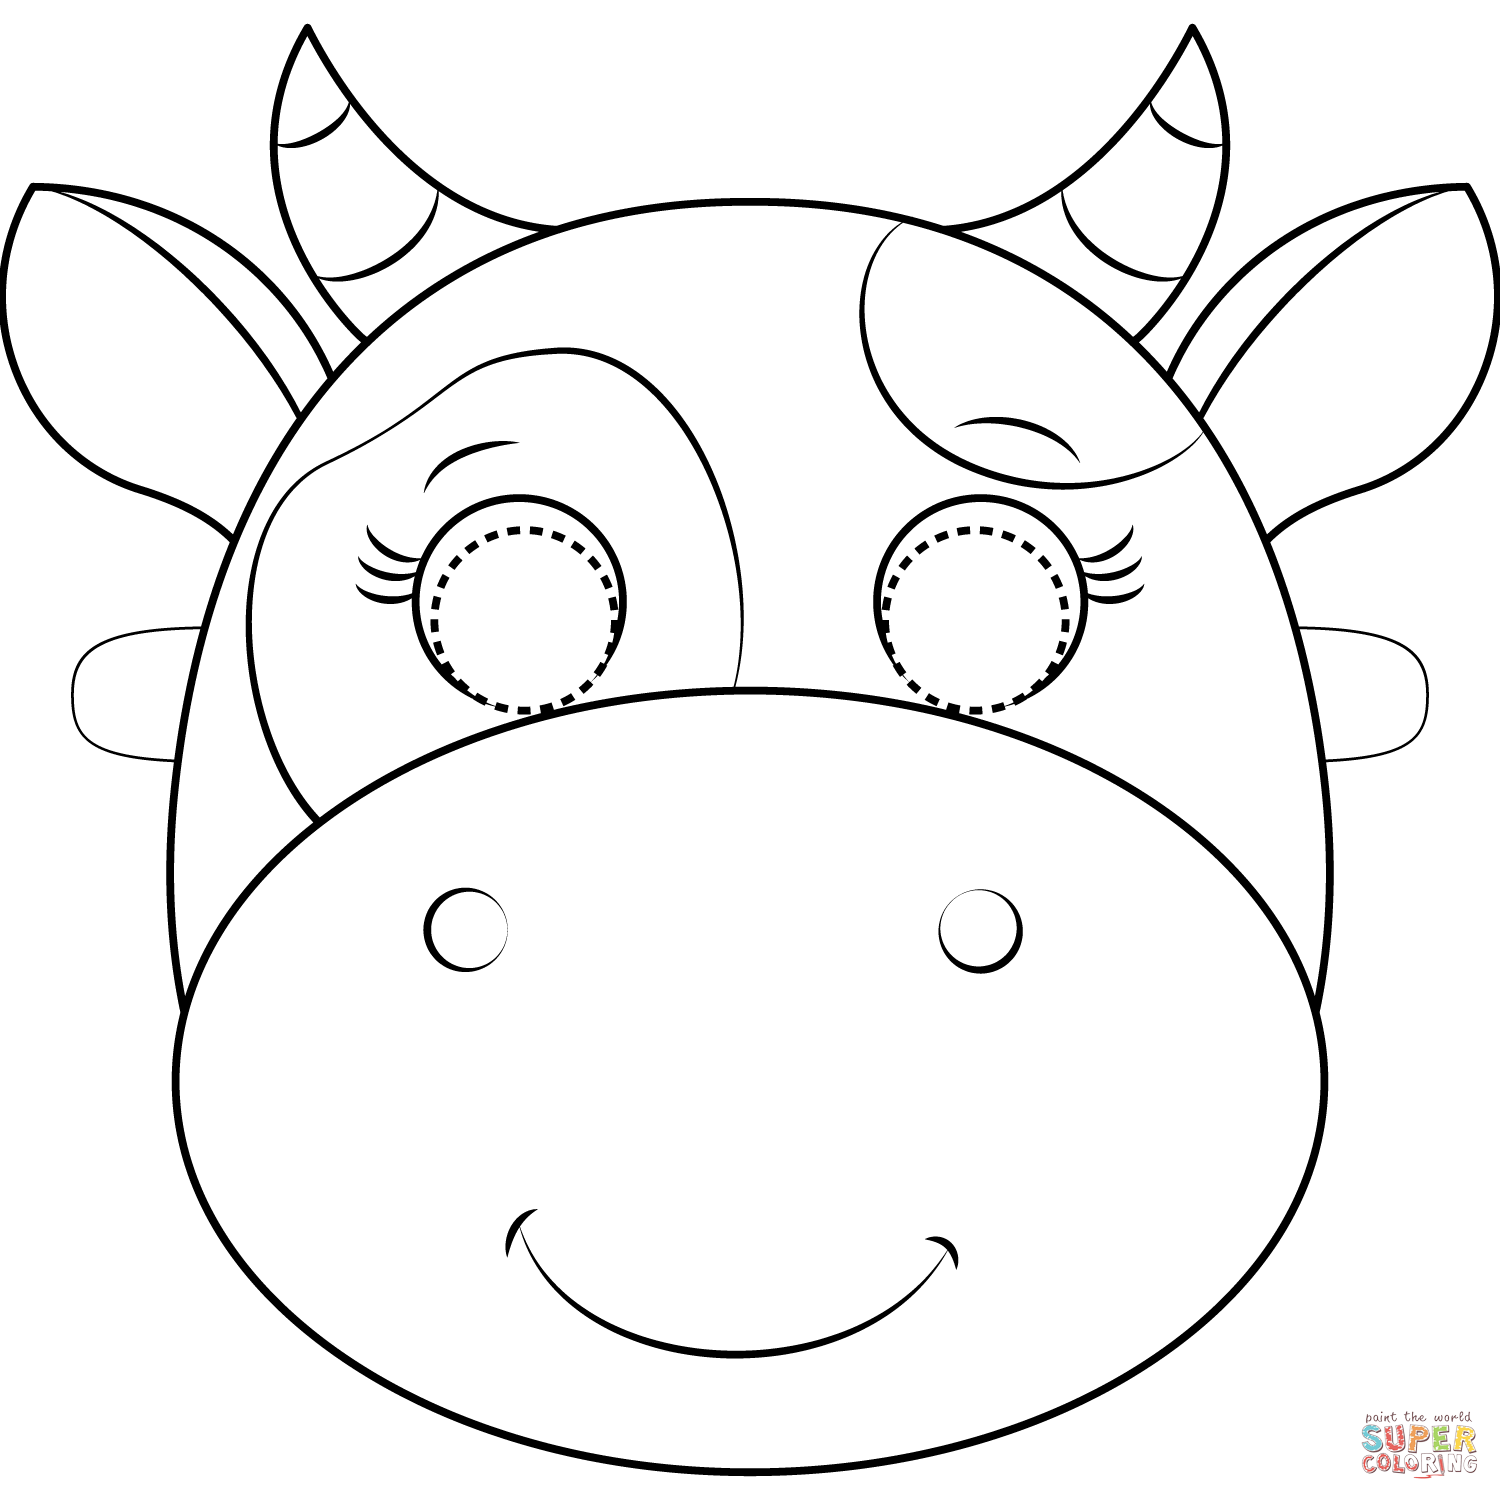 Cow Mask Coloring Page Free Printable Coloring Pages In 2020 Cow Coloring Pages Cow Mask Free Printable Coloring